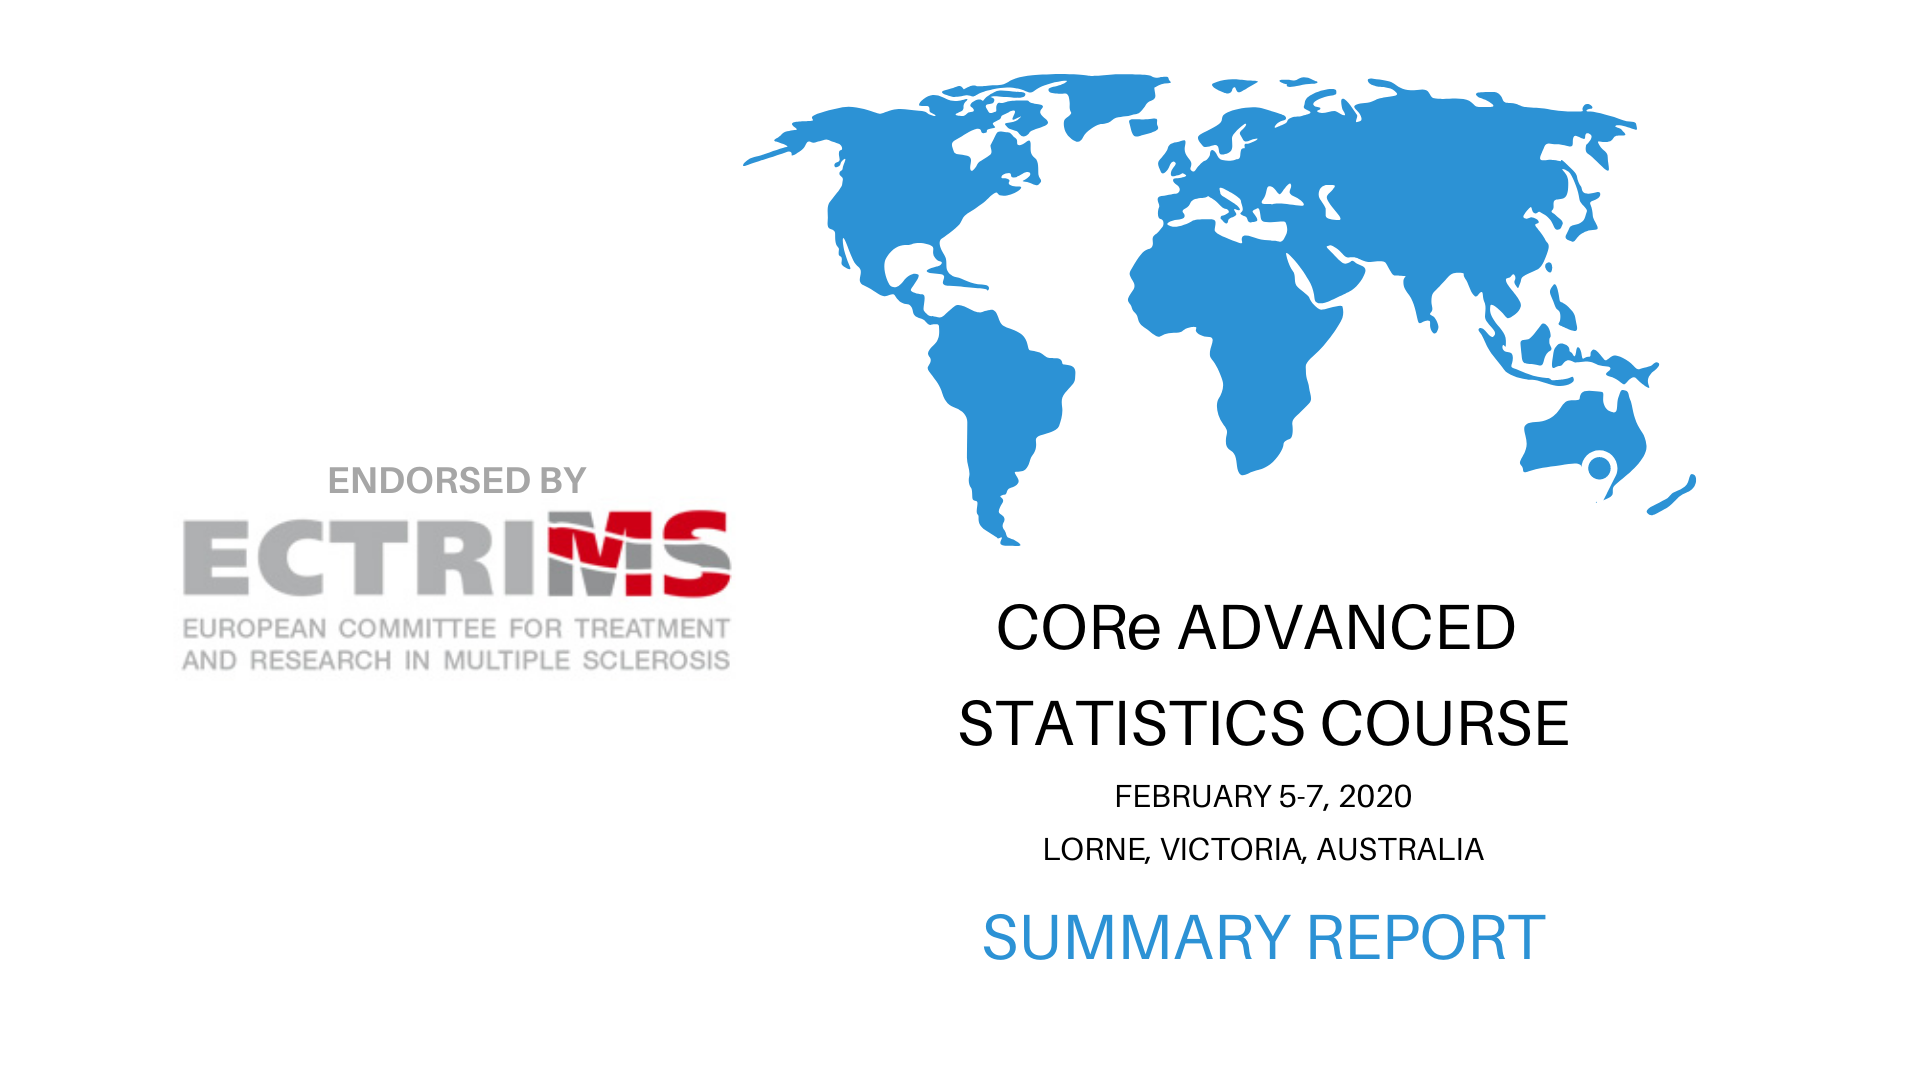 CORe Advanced Statistics Course